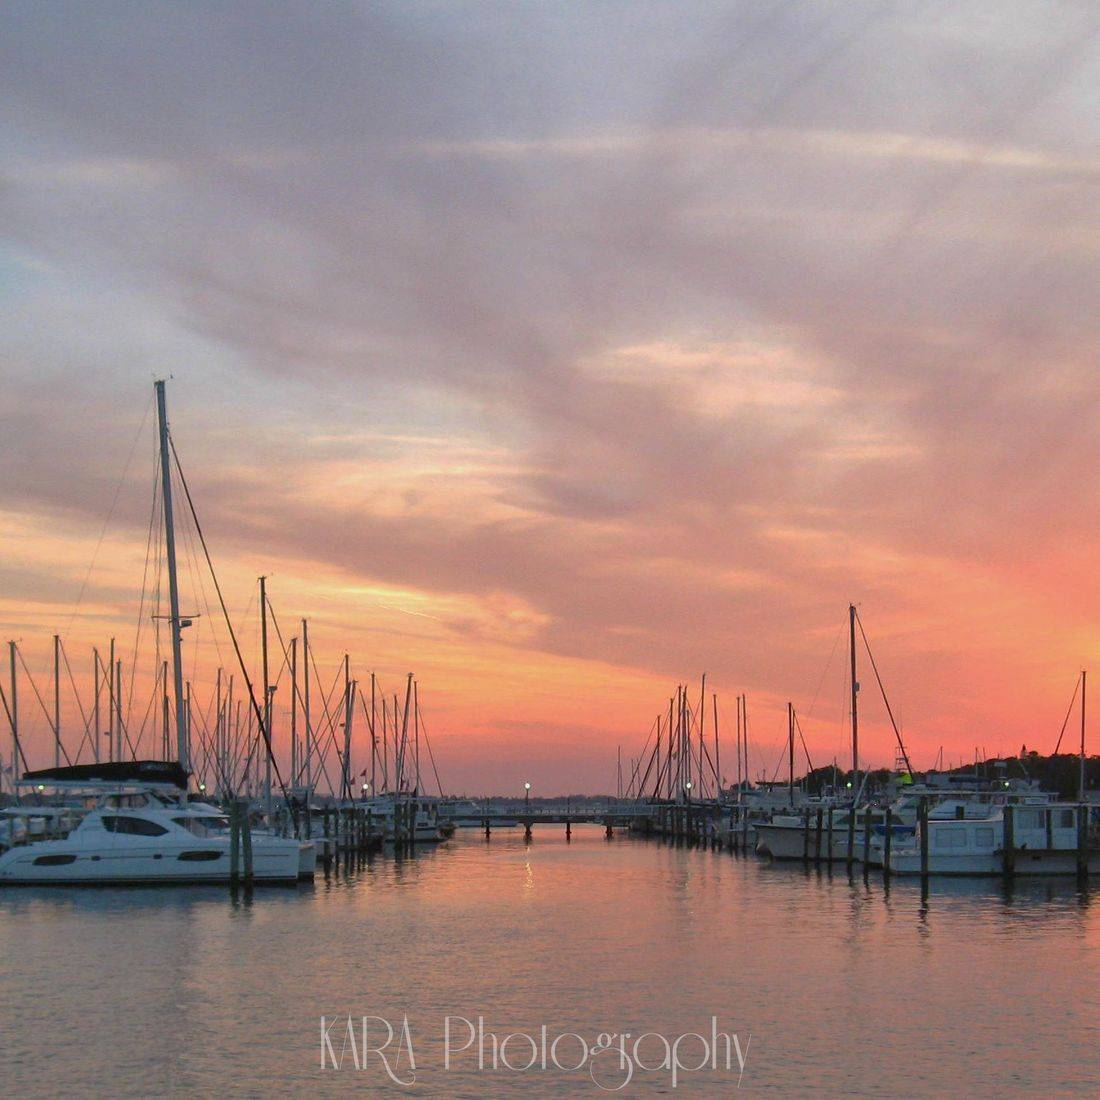 Palmetto, Florida, Sunset, Marina, Gulf of Mexico